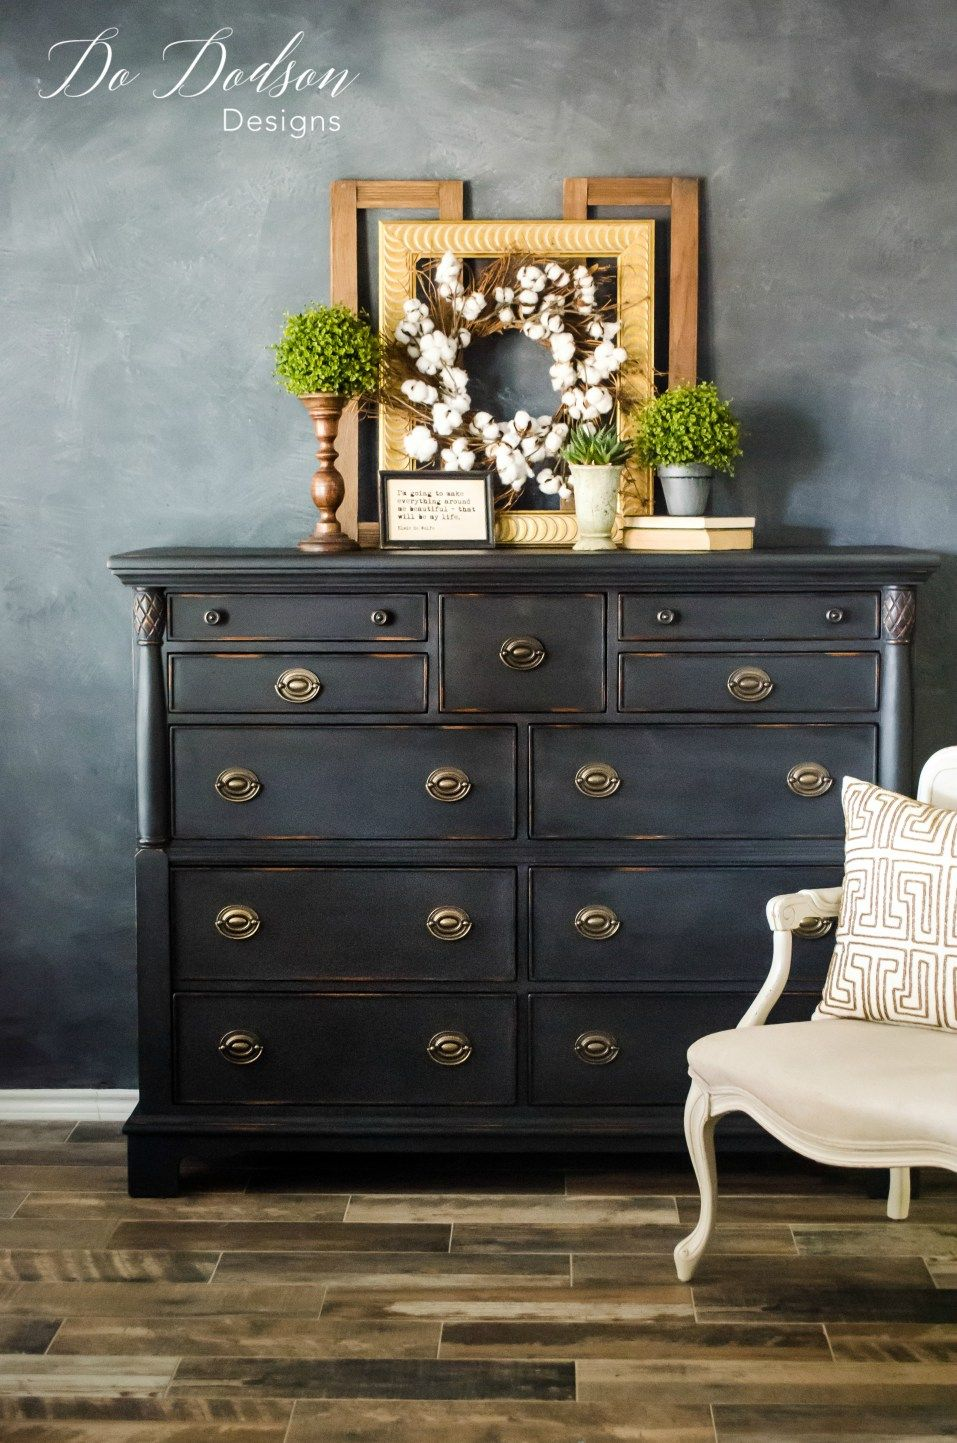 DIY Decorative Furniture Painting and Home Decor Black